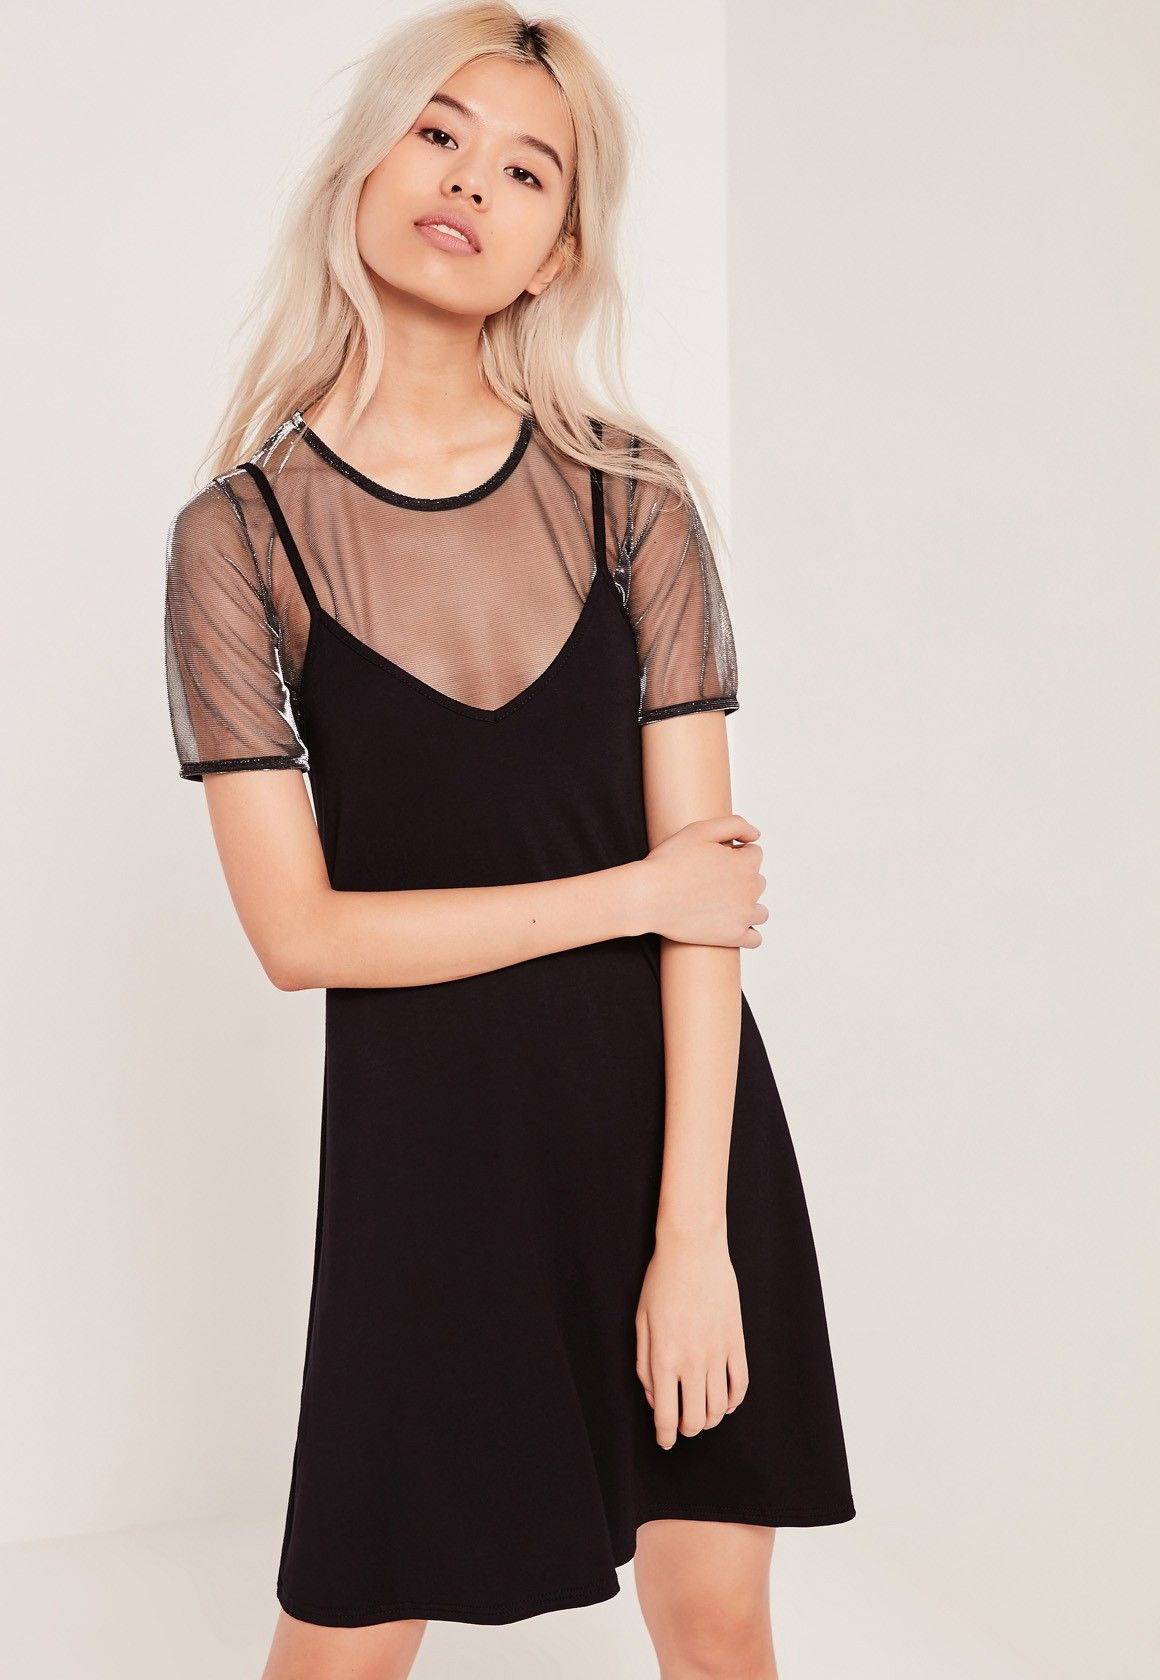 Missguided 2 In 1 Strappy Mesh Dresses Metallic Dresses Mesh Dress Womens Dresses [ 1680 x 1160 Pixel ]